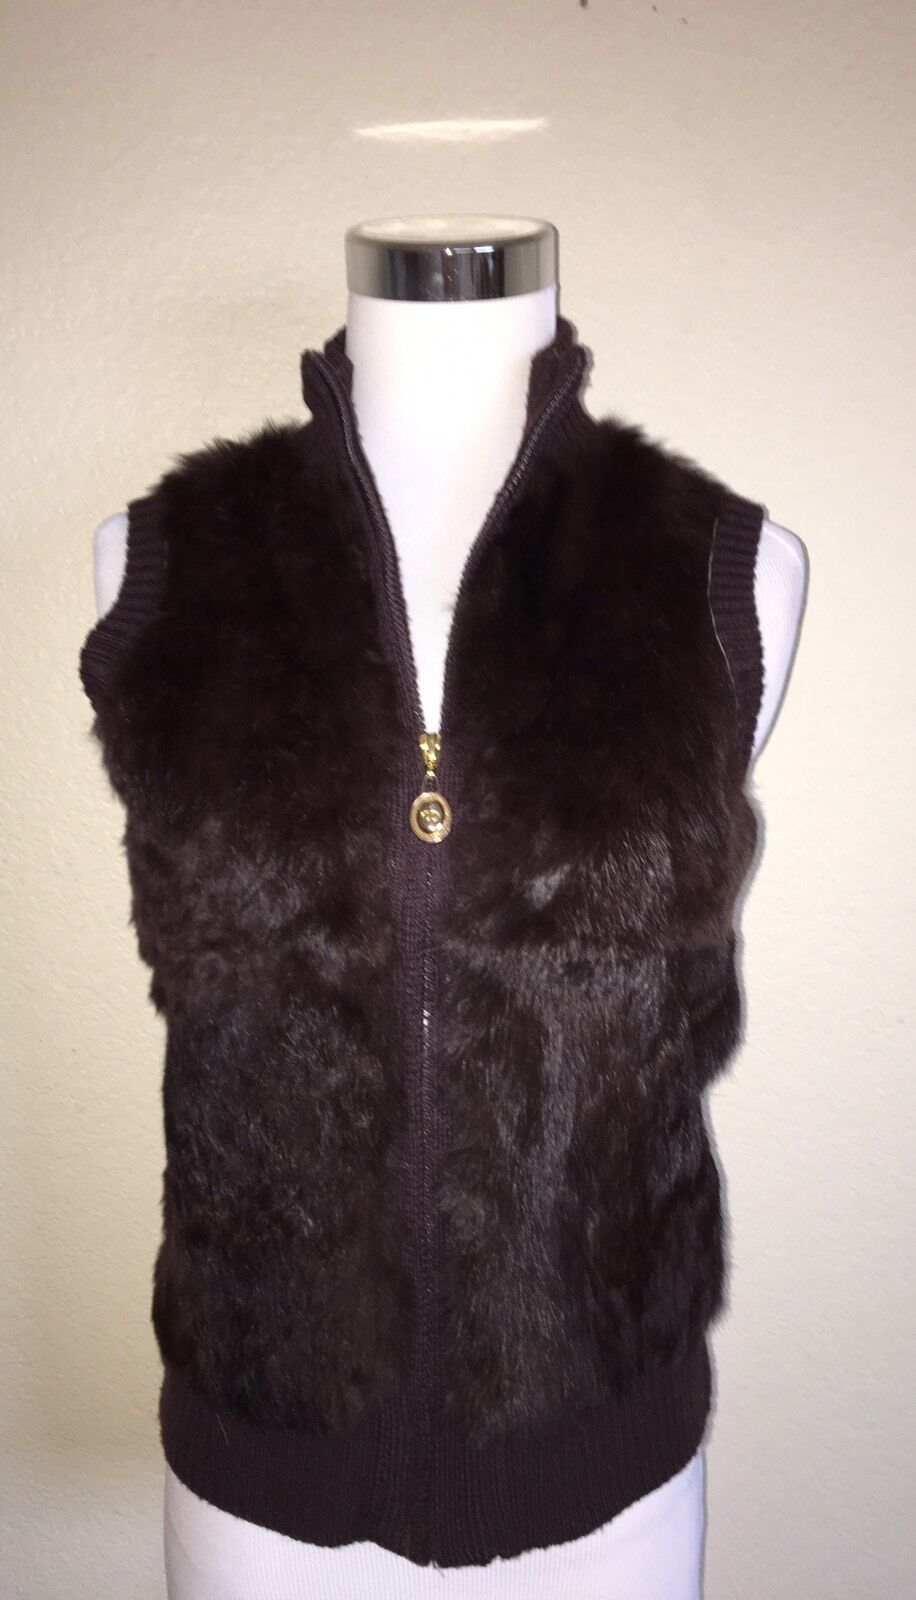 CHRISTIAN DIOR VINTAGE FUR VEST W  gold TONE LOGO ZIP PULL WOMAN SIZE SMALL